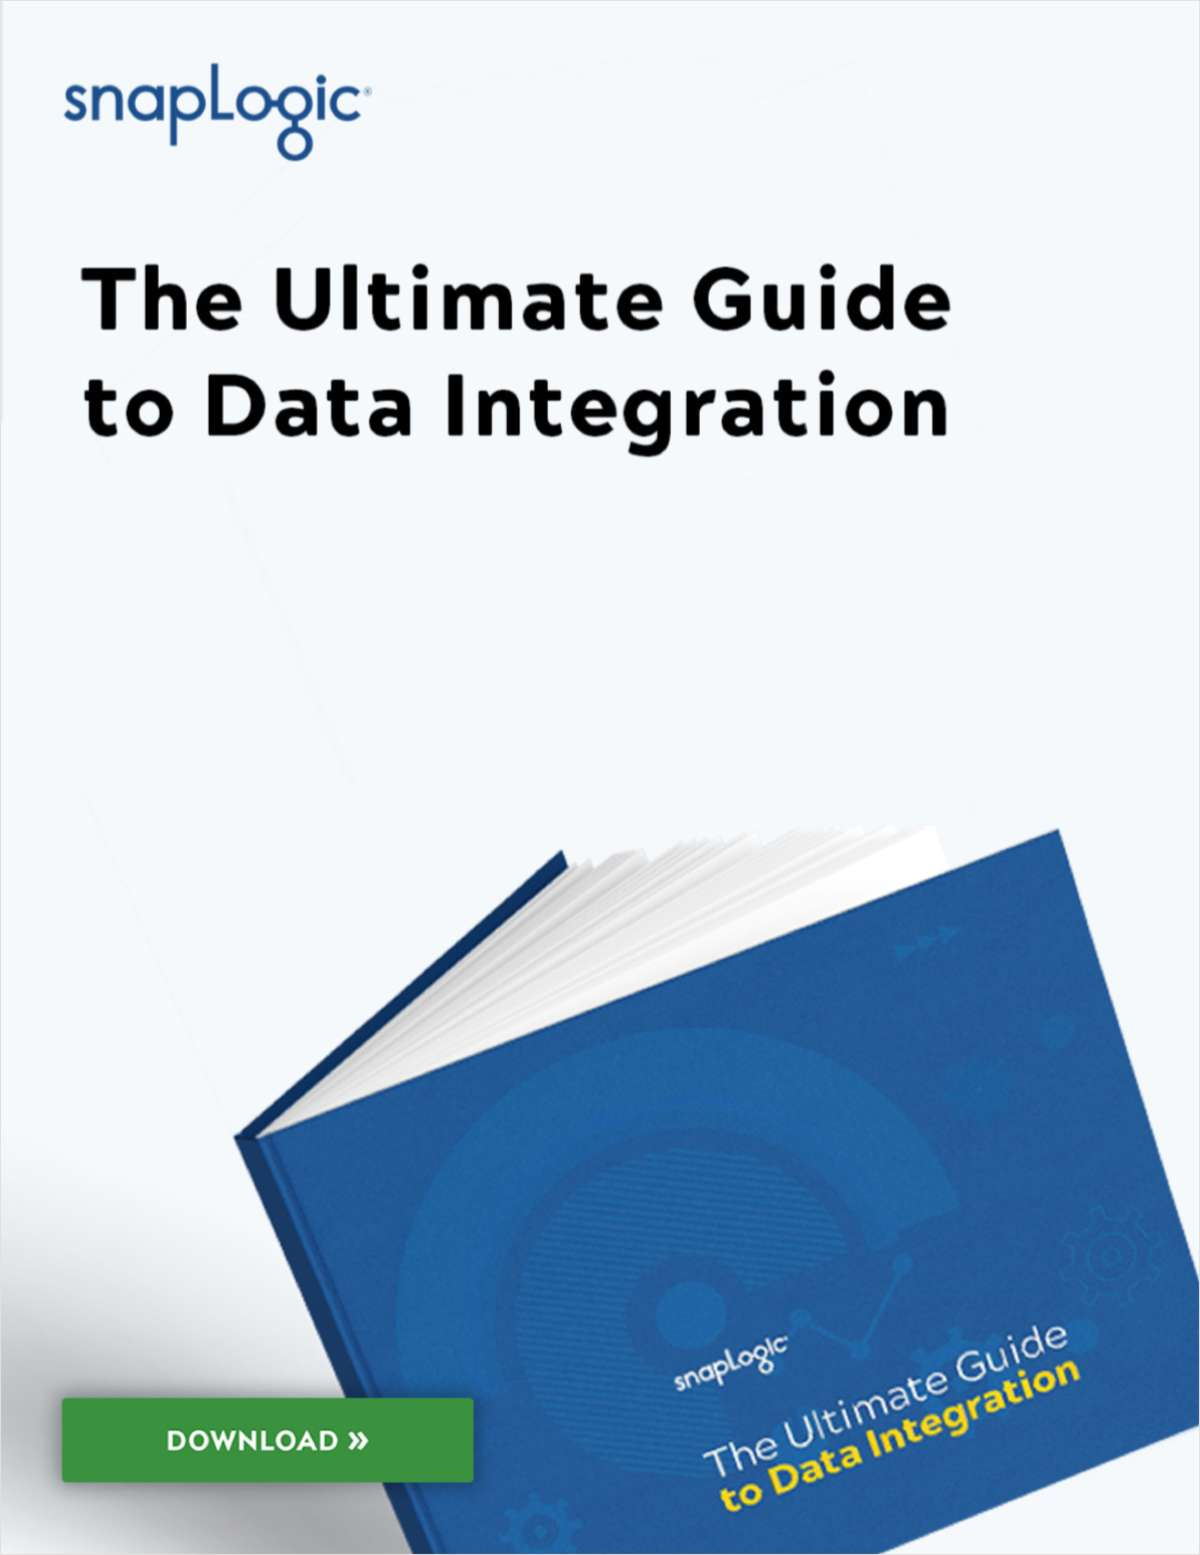 The Ultimate Guide to Data Integration